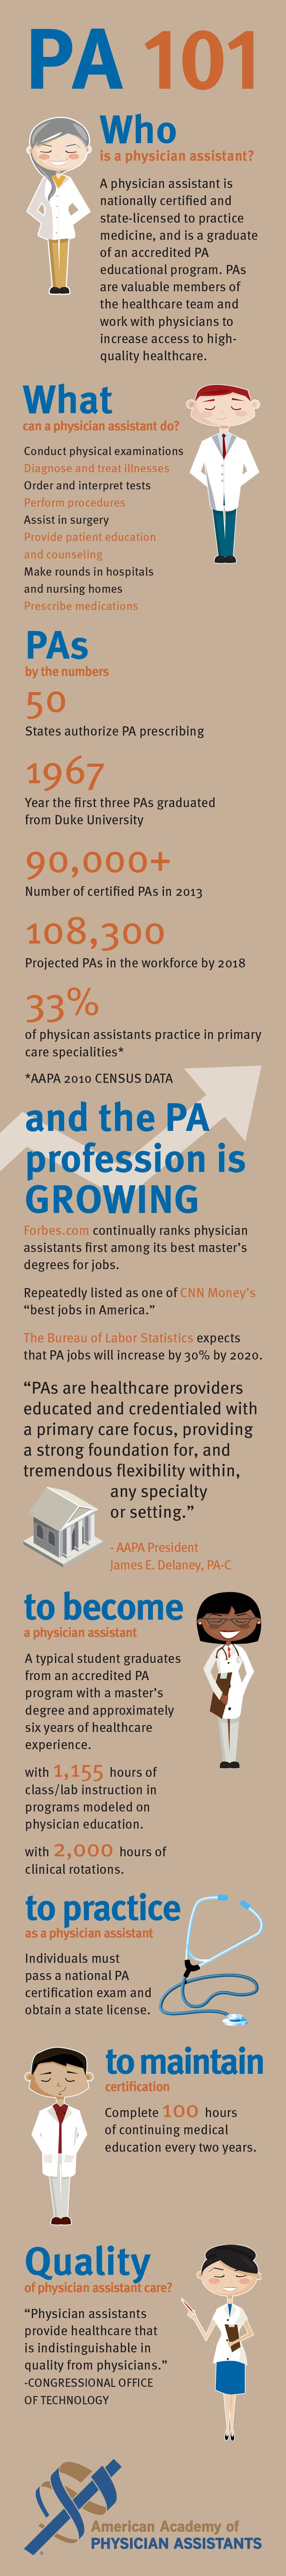 Physician Assistants 101 | AAPA